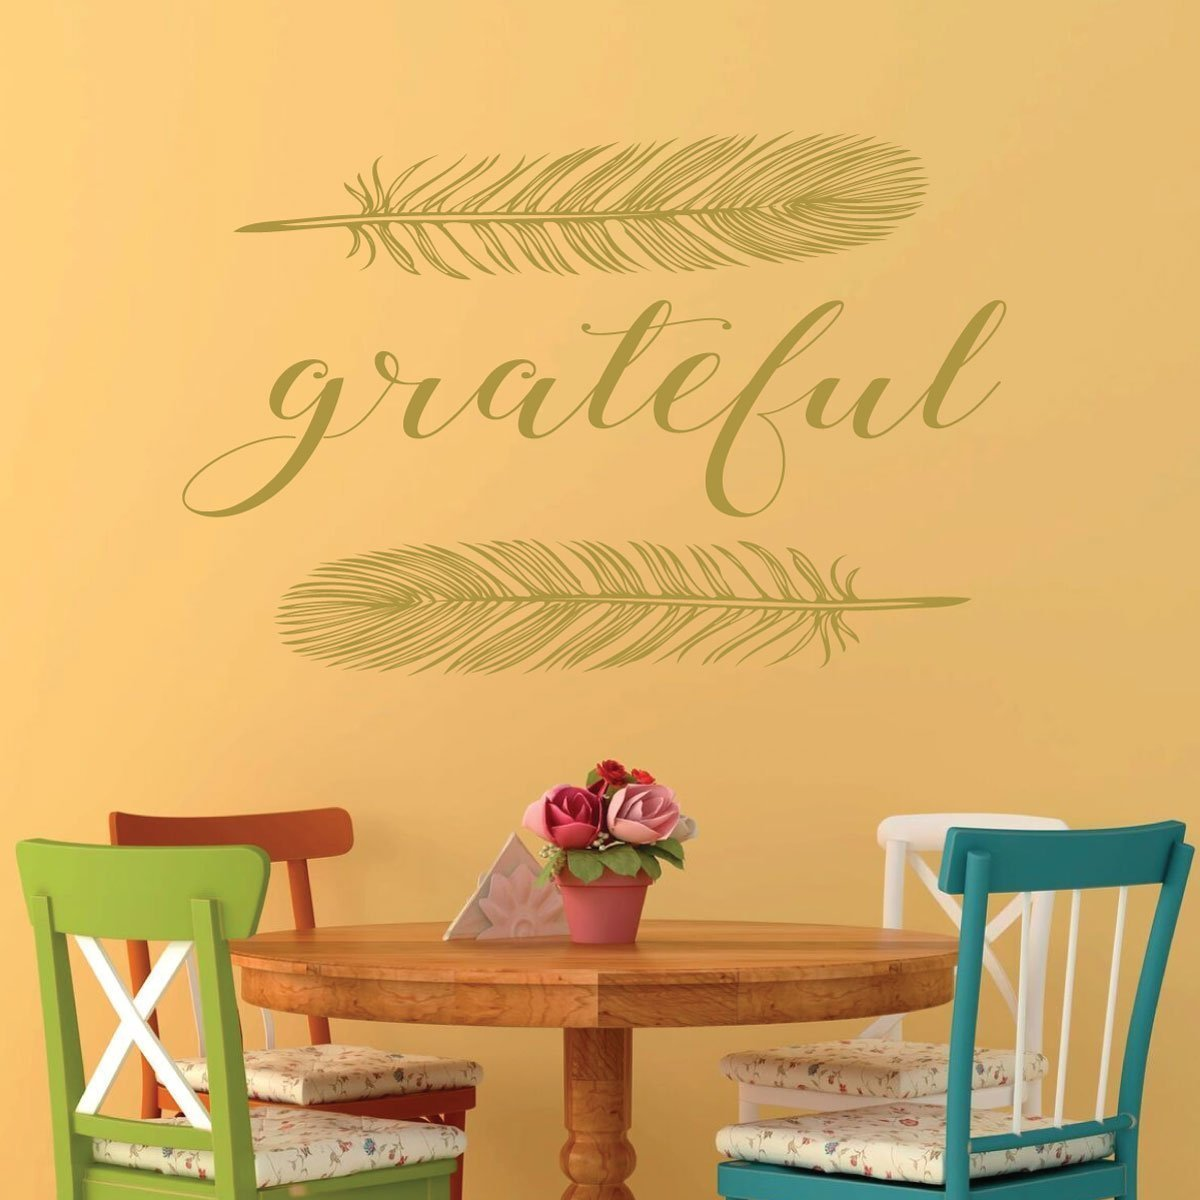 Amazon.com: Gratitude Wall Decal - Grateful Word with Feathers ...